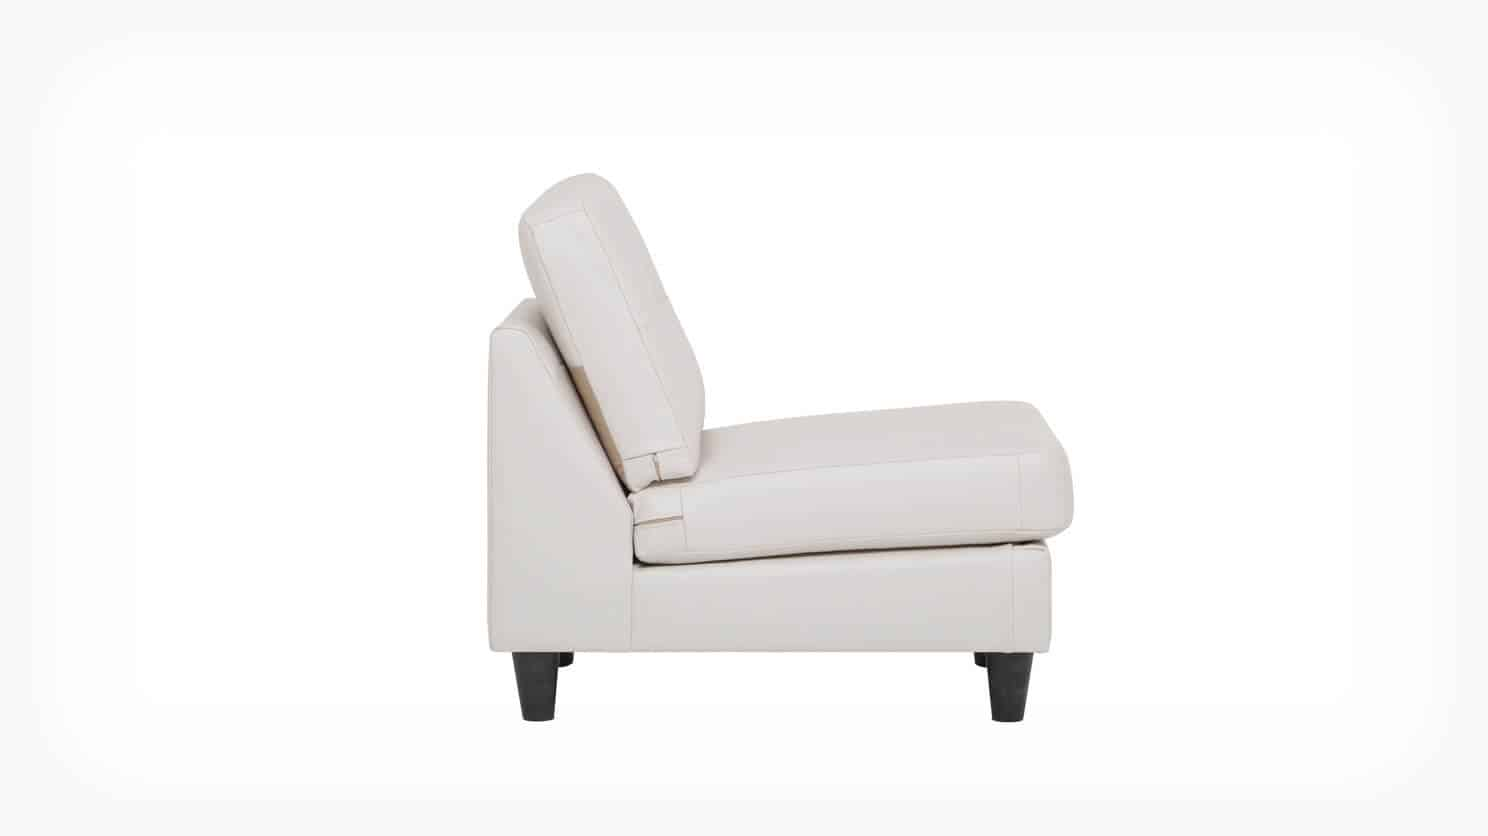 77480 10 2 chairs solo armless chair disco leather side